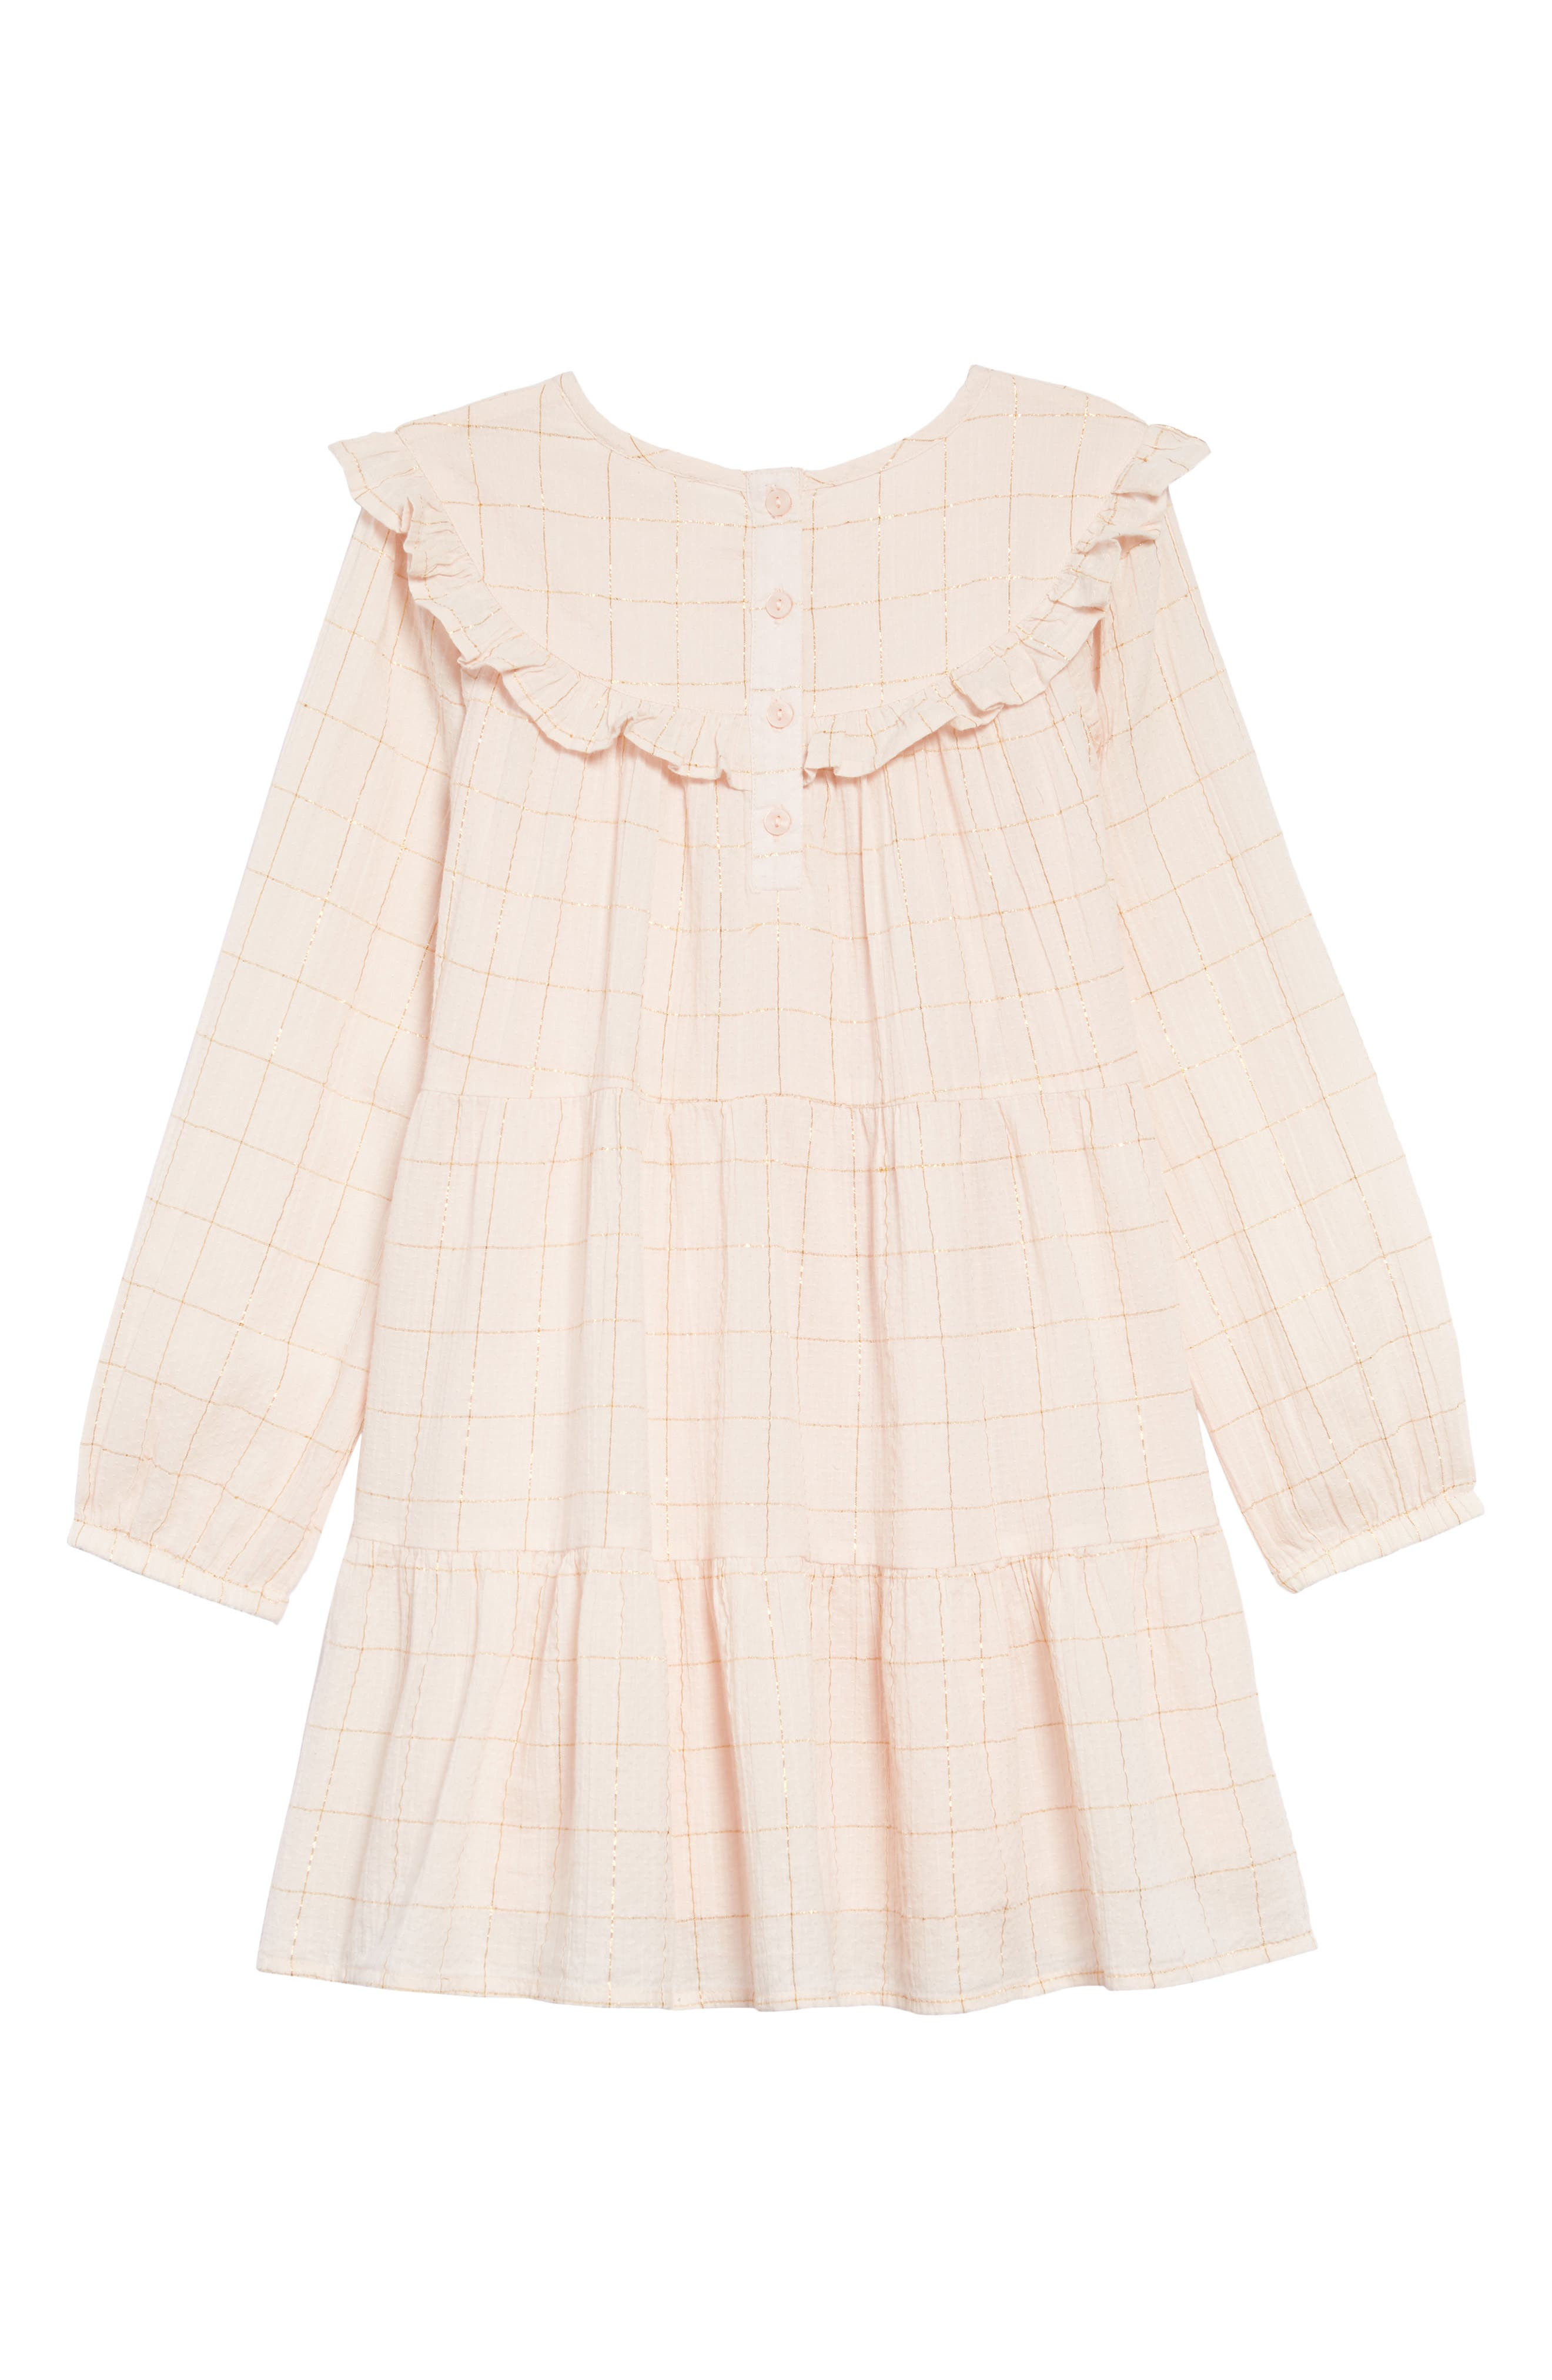 Tiered Dress,                             Alternate thumbnail 2, color,                             PINK WOOD- GOLD CHECK